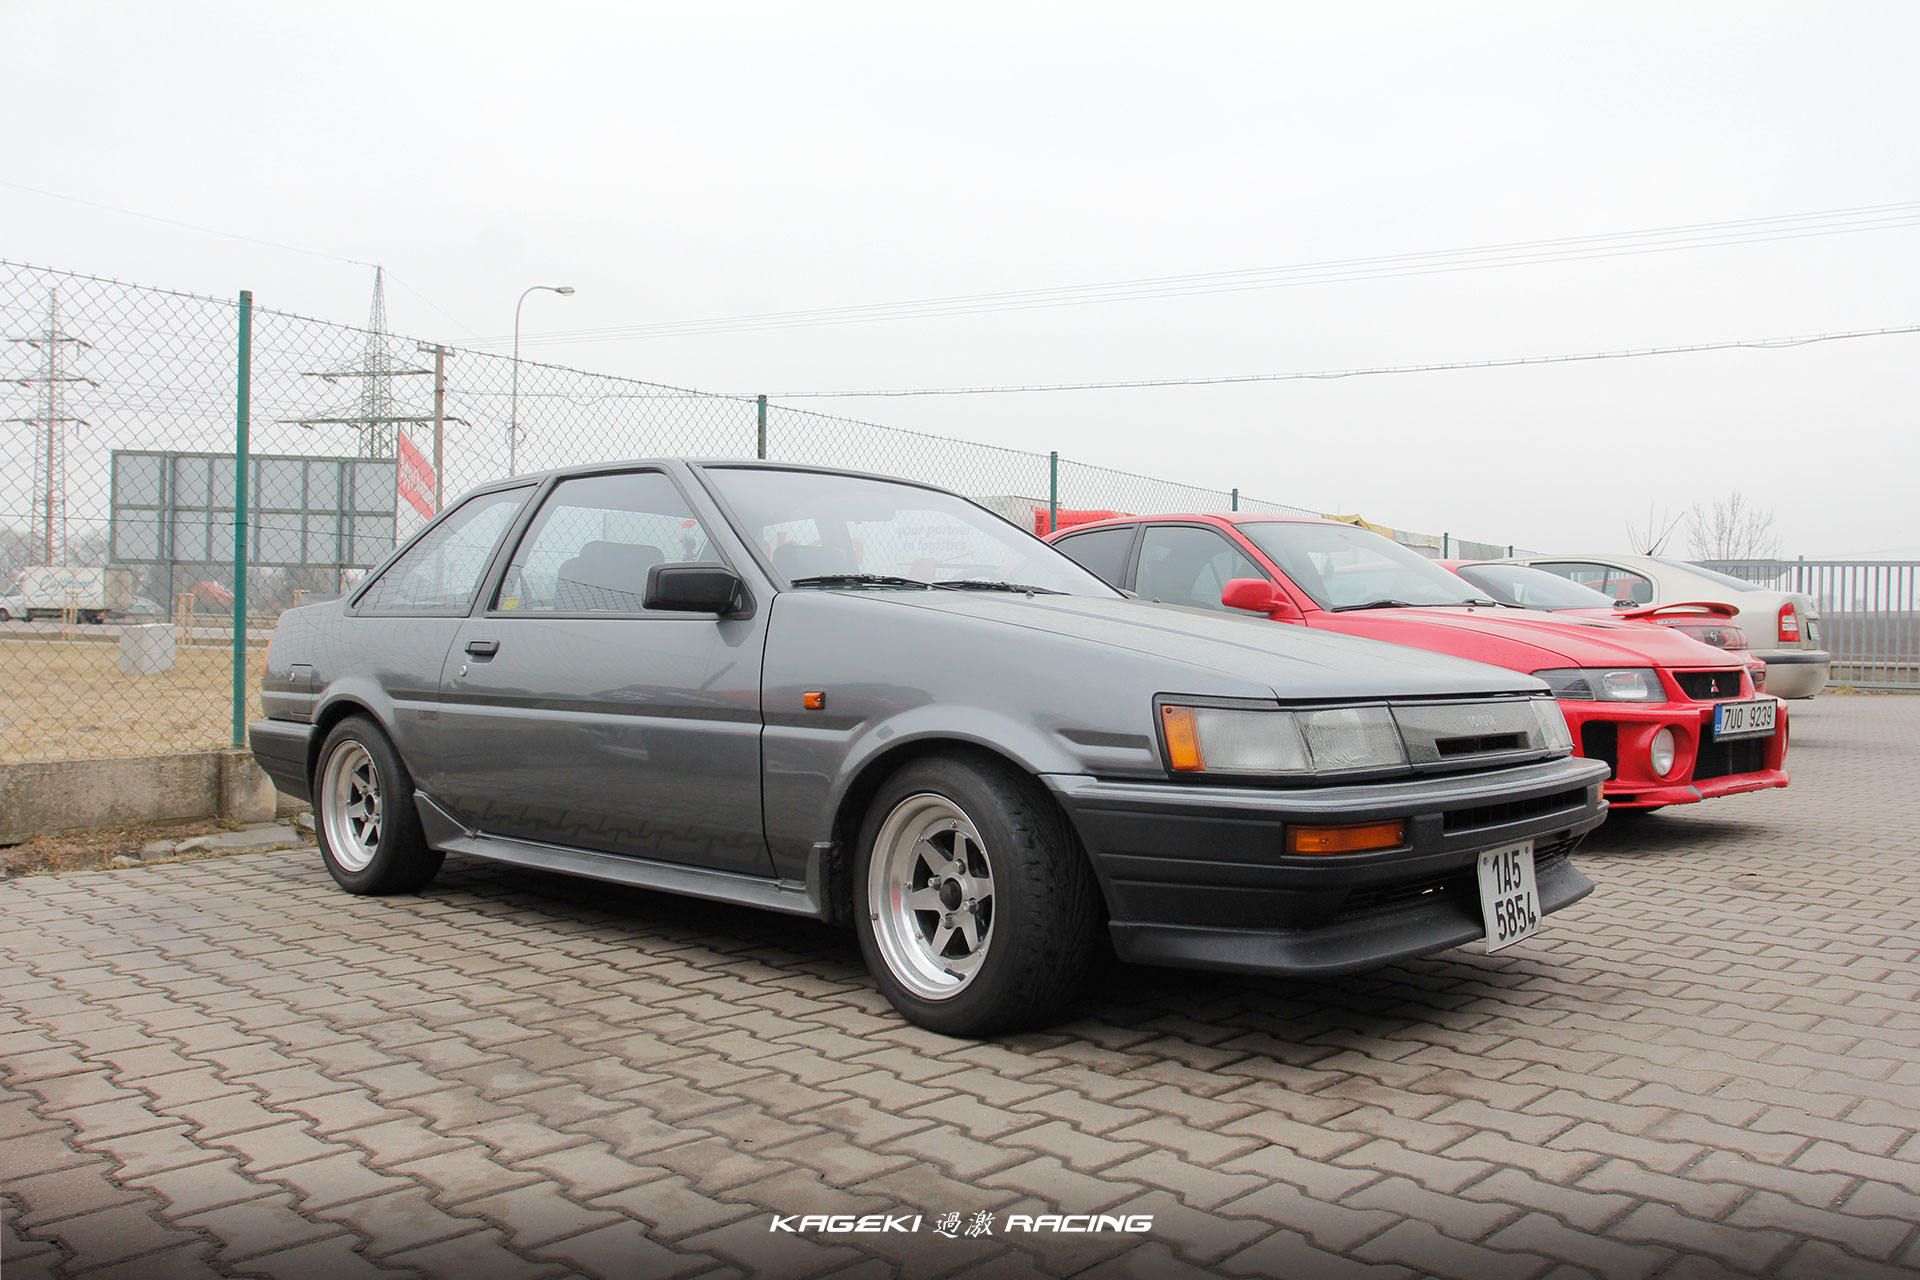 Toyota Honda >> Toyota AE86 Levin coupe | Kageki Racing - Expensive toys for big boys